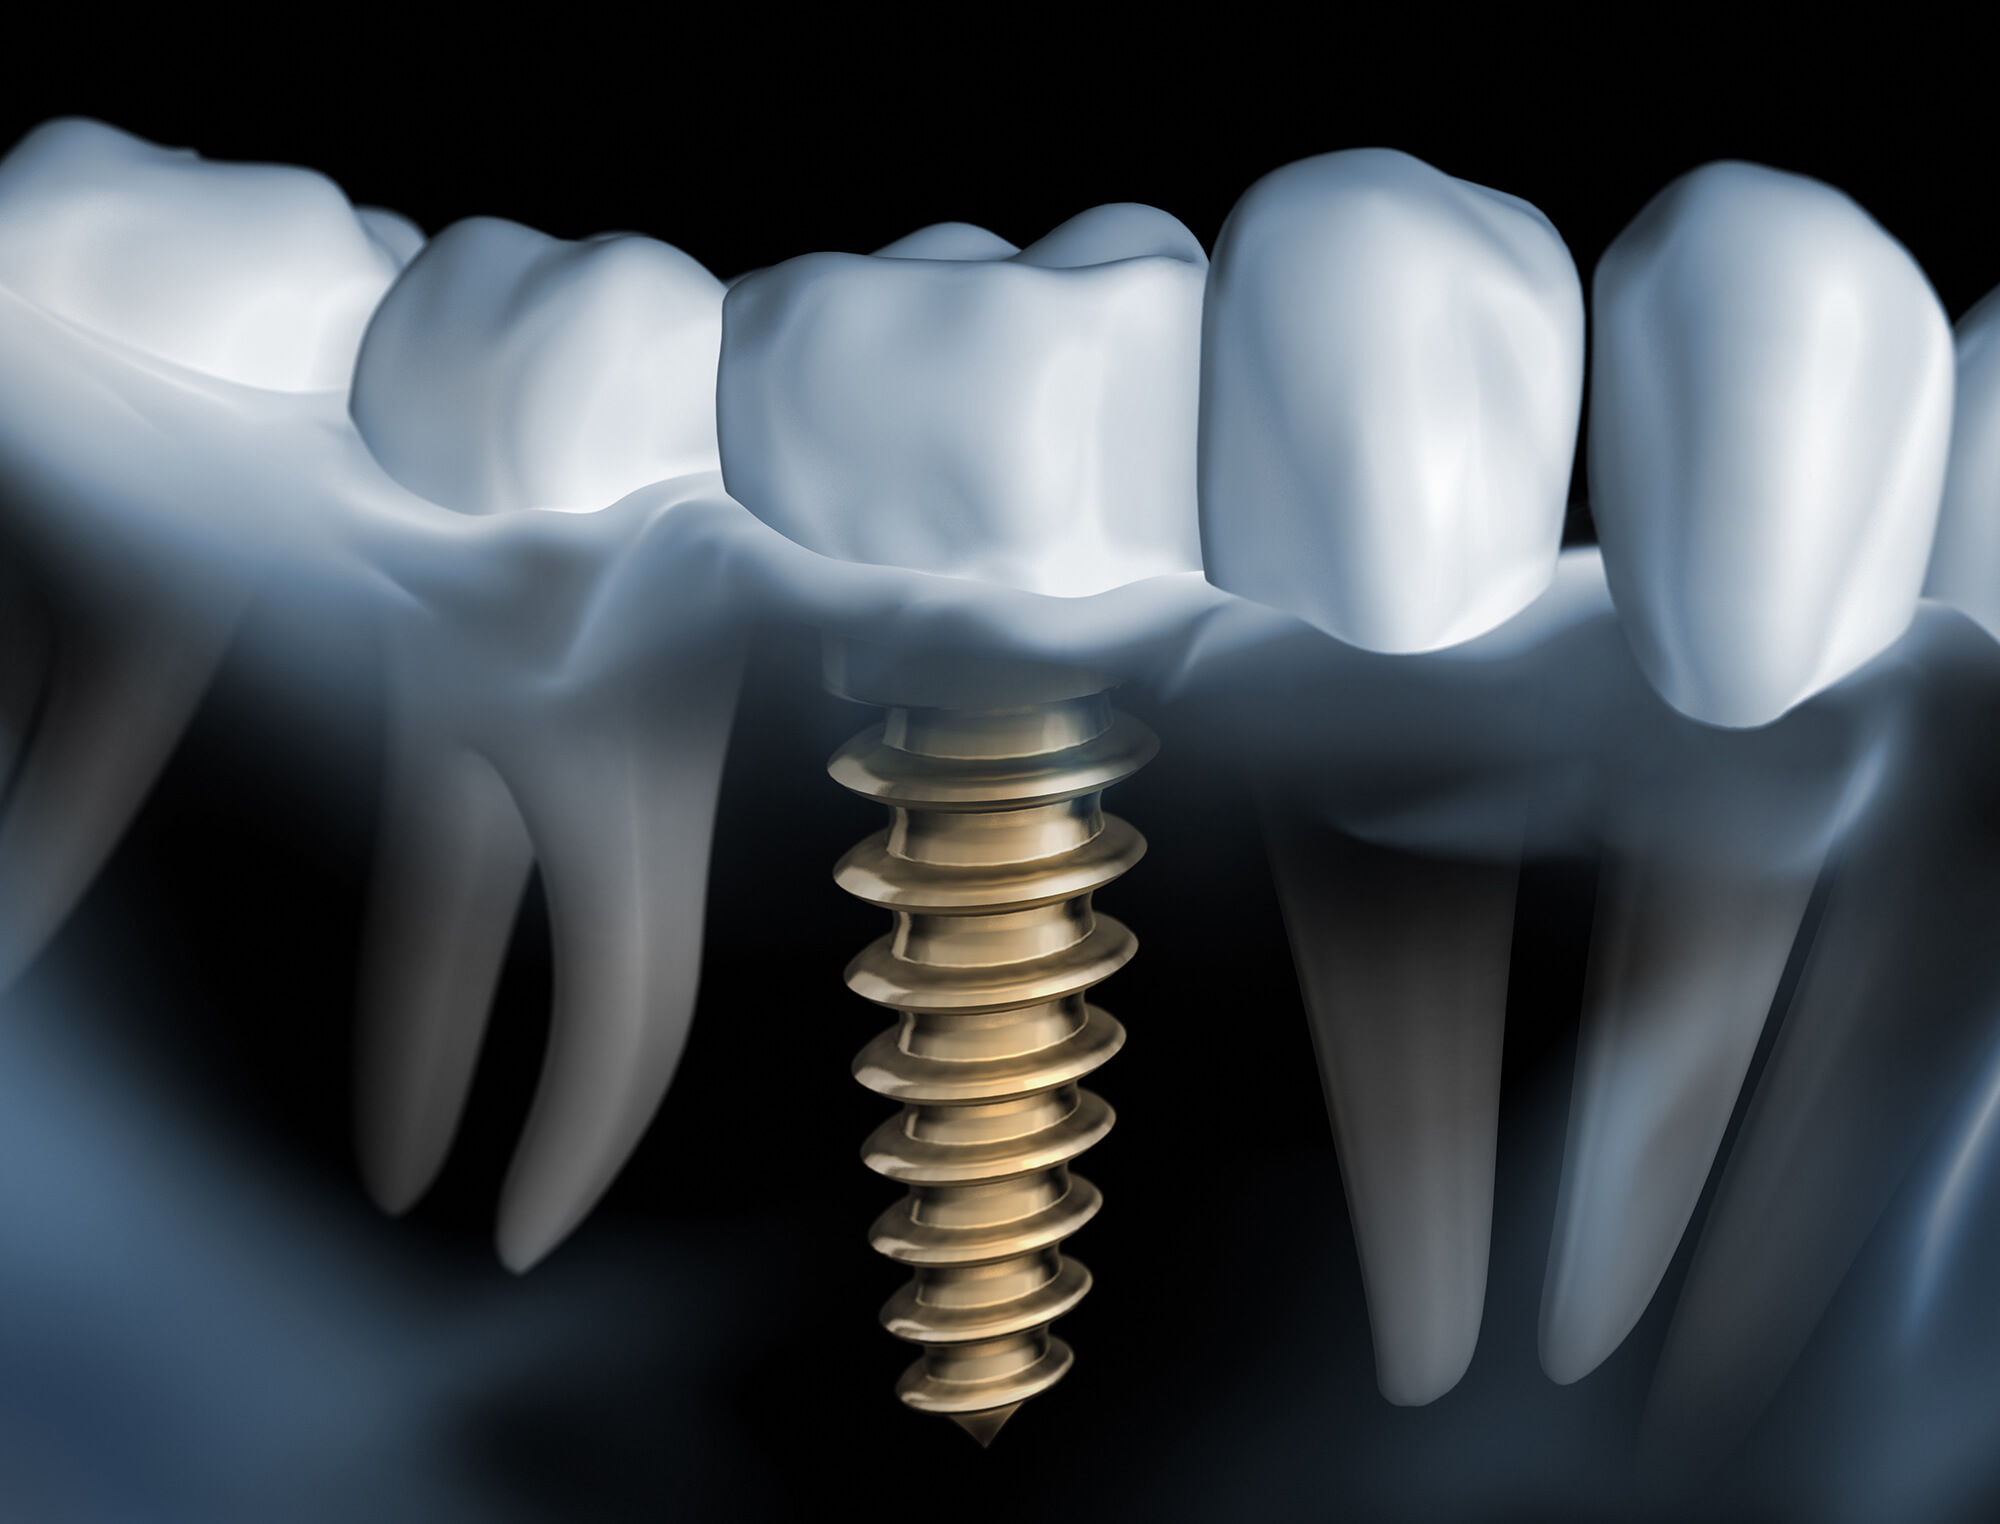 implant dentaire cannes